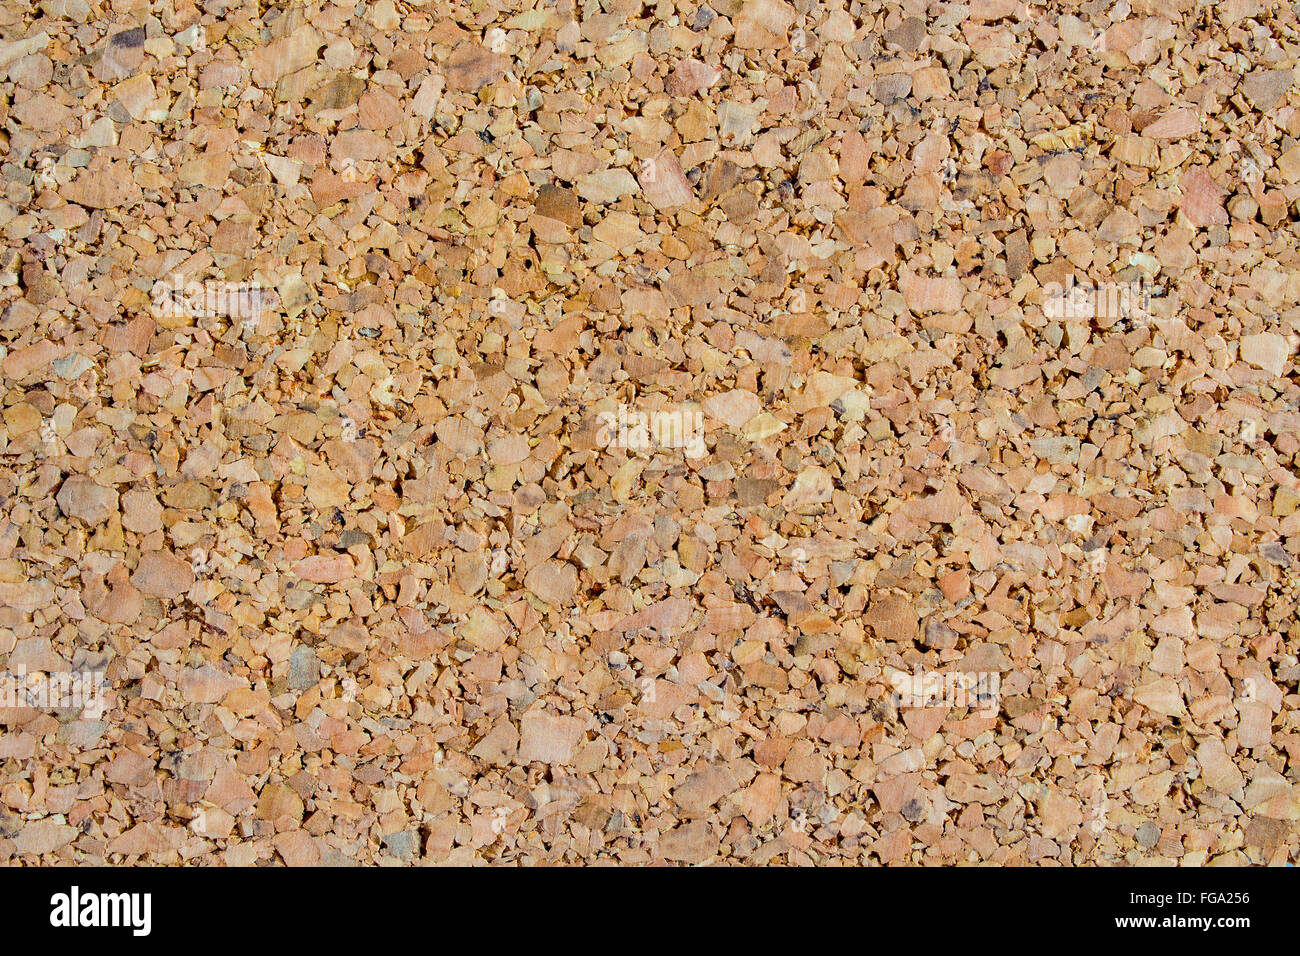 Bulletin Board Background Texture - Stock Image